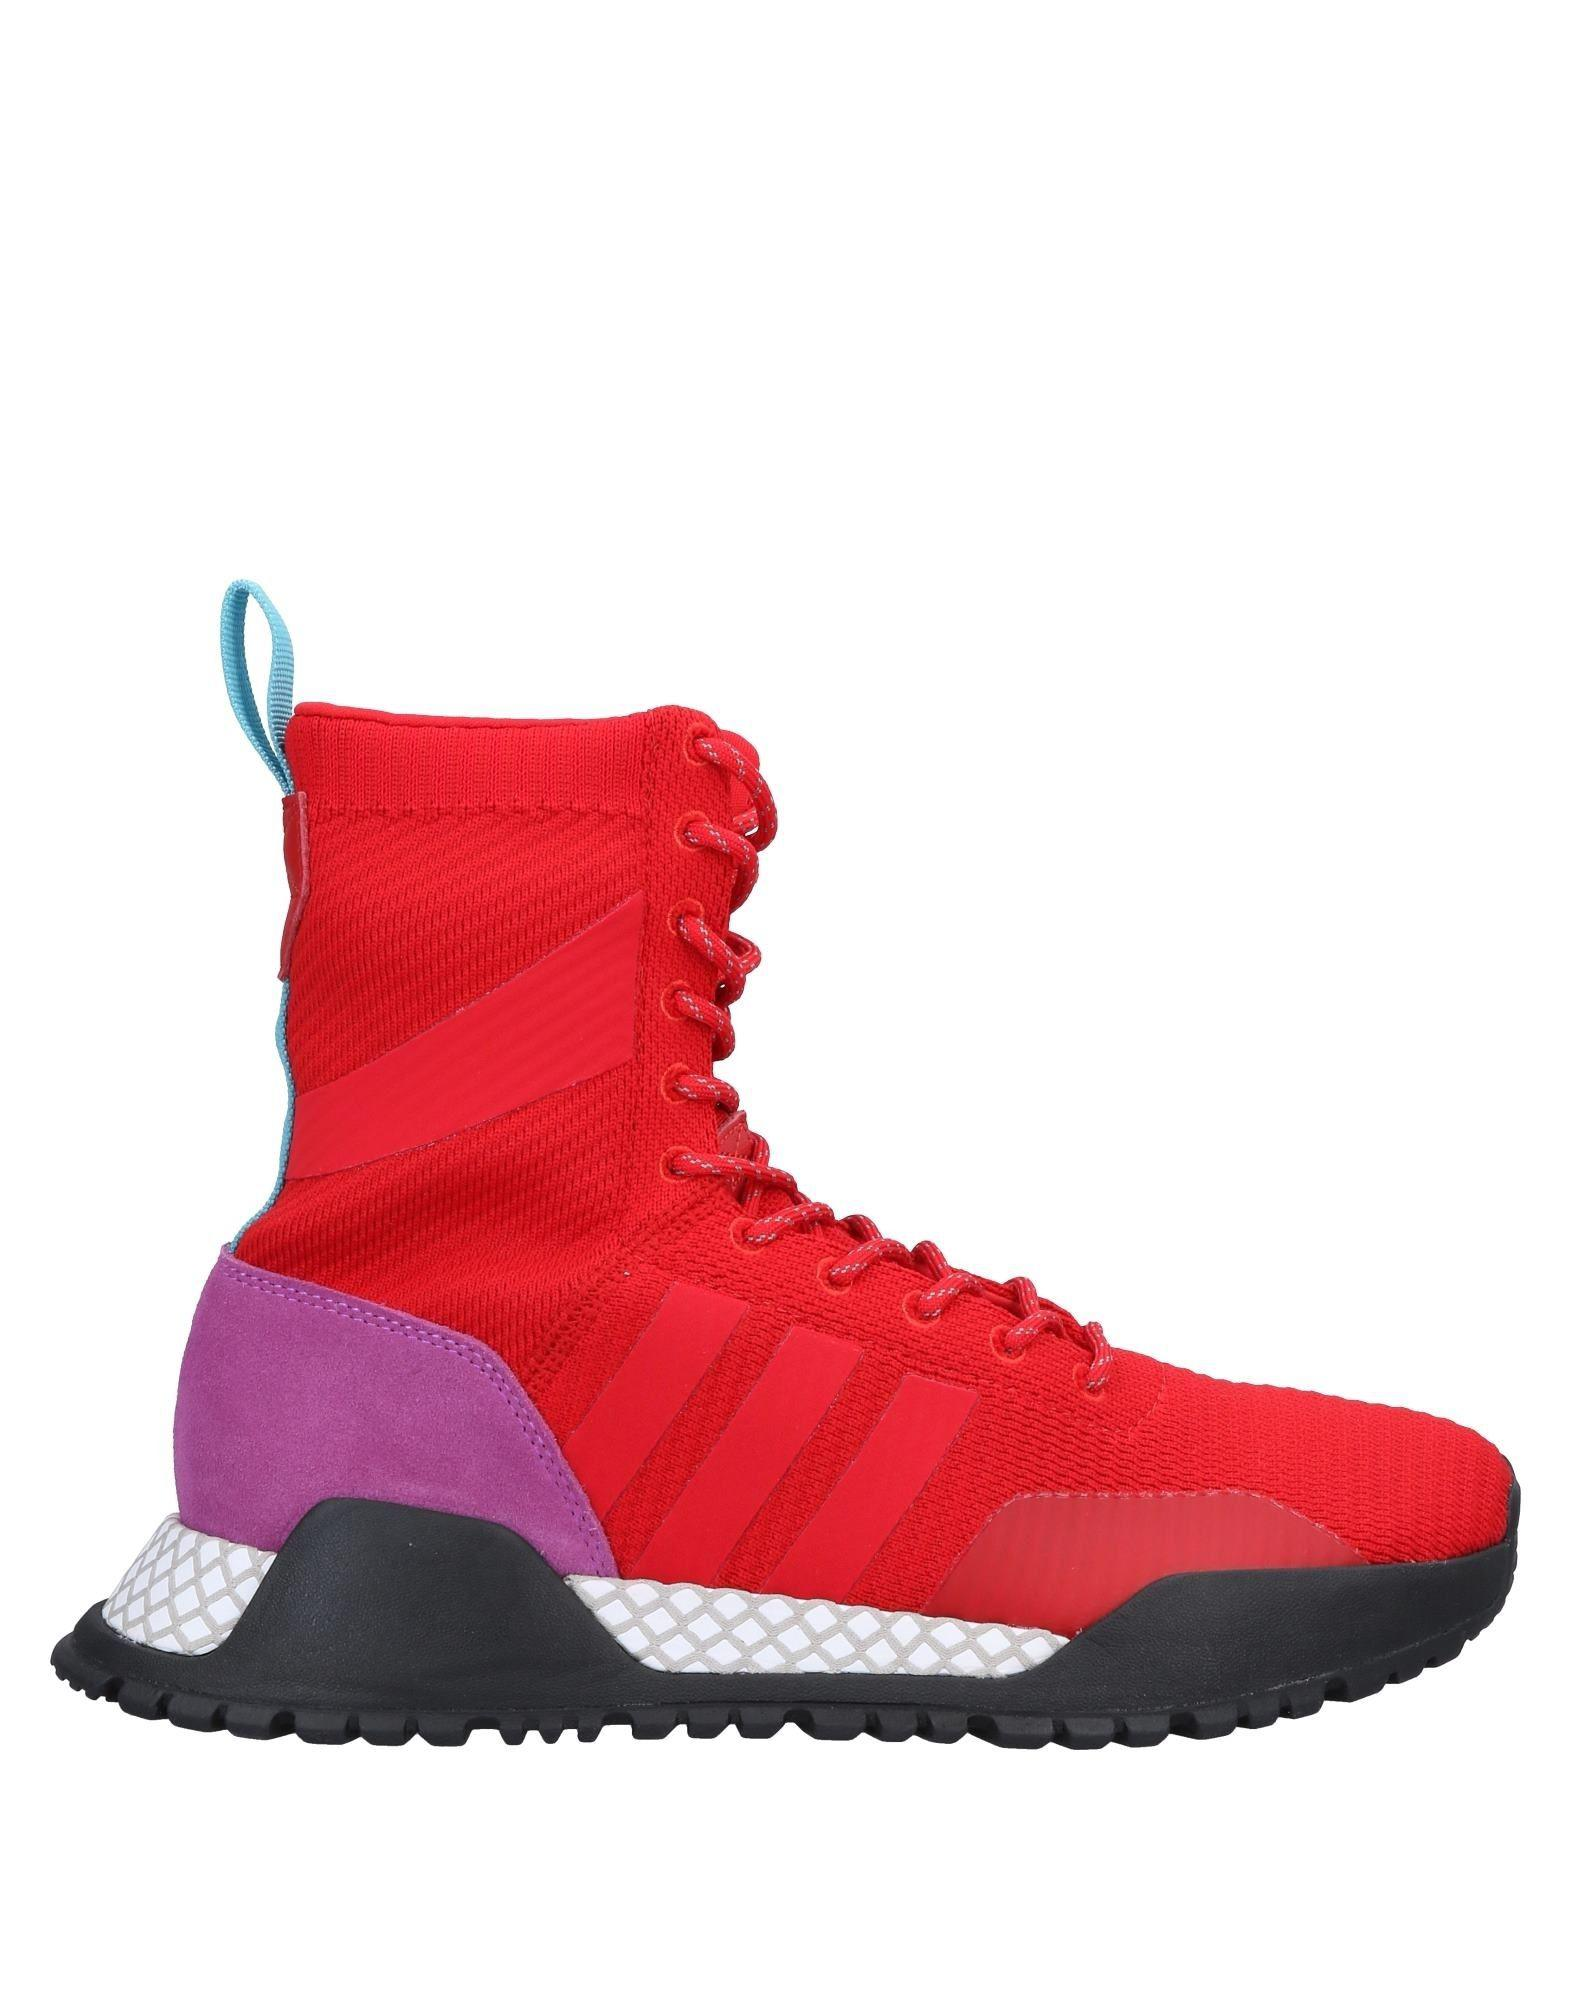 b7e4f8a1dc65 Sneakers Red Men Originals Adidas In amp; Tops High For Lyst WTvHwqW